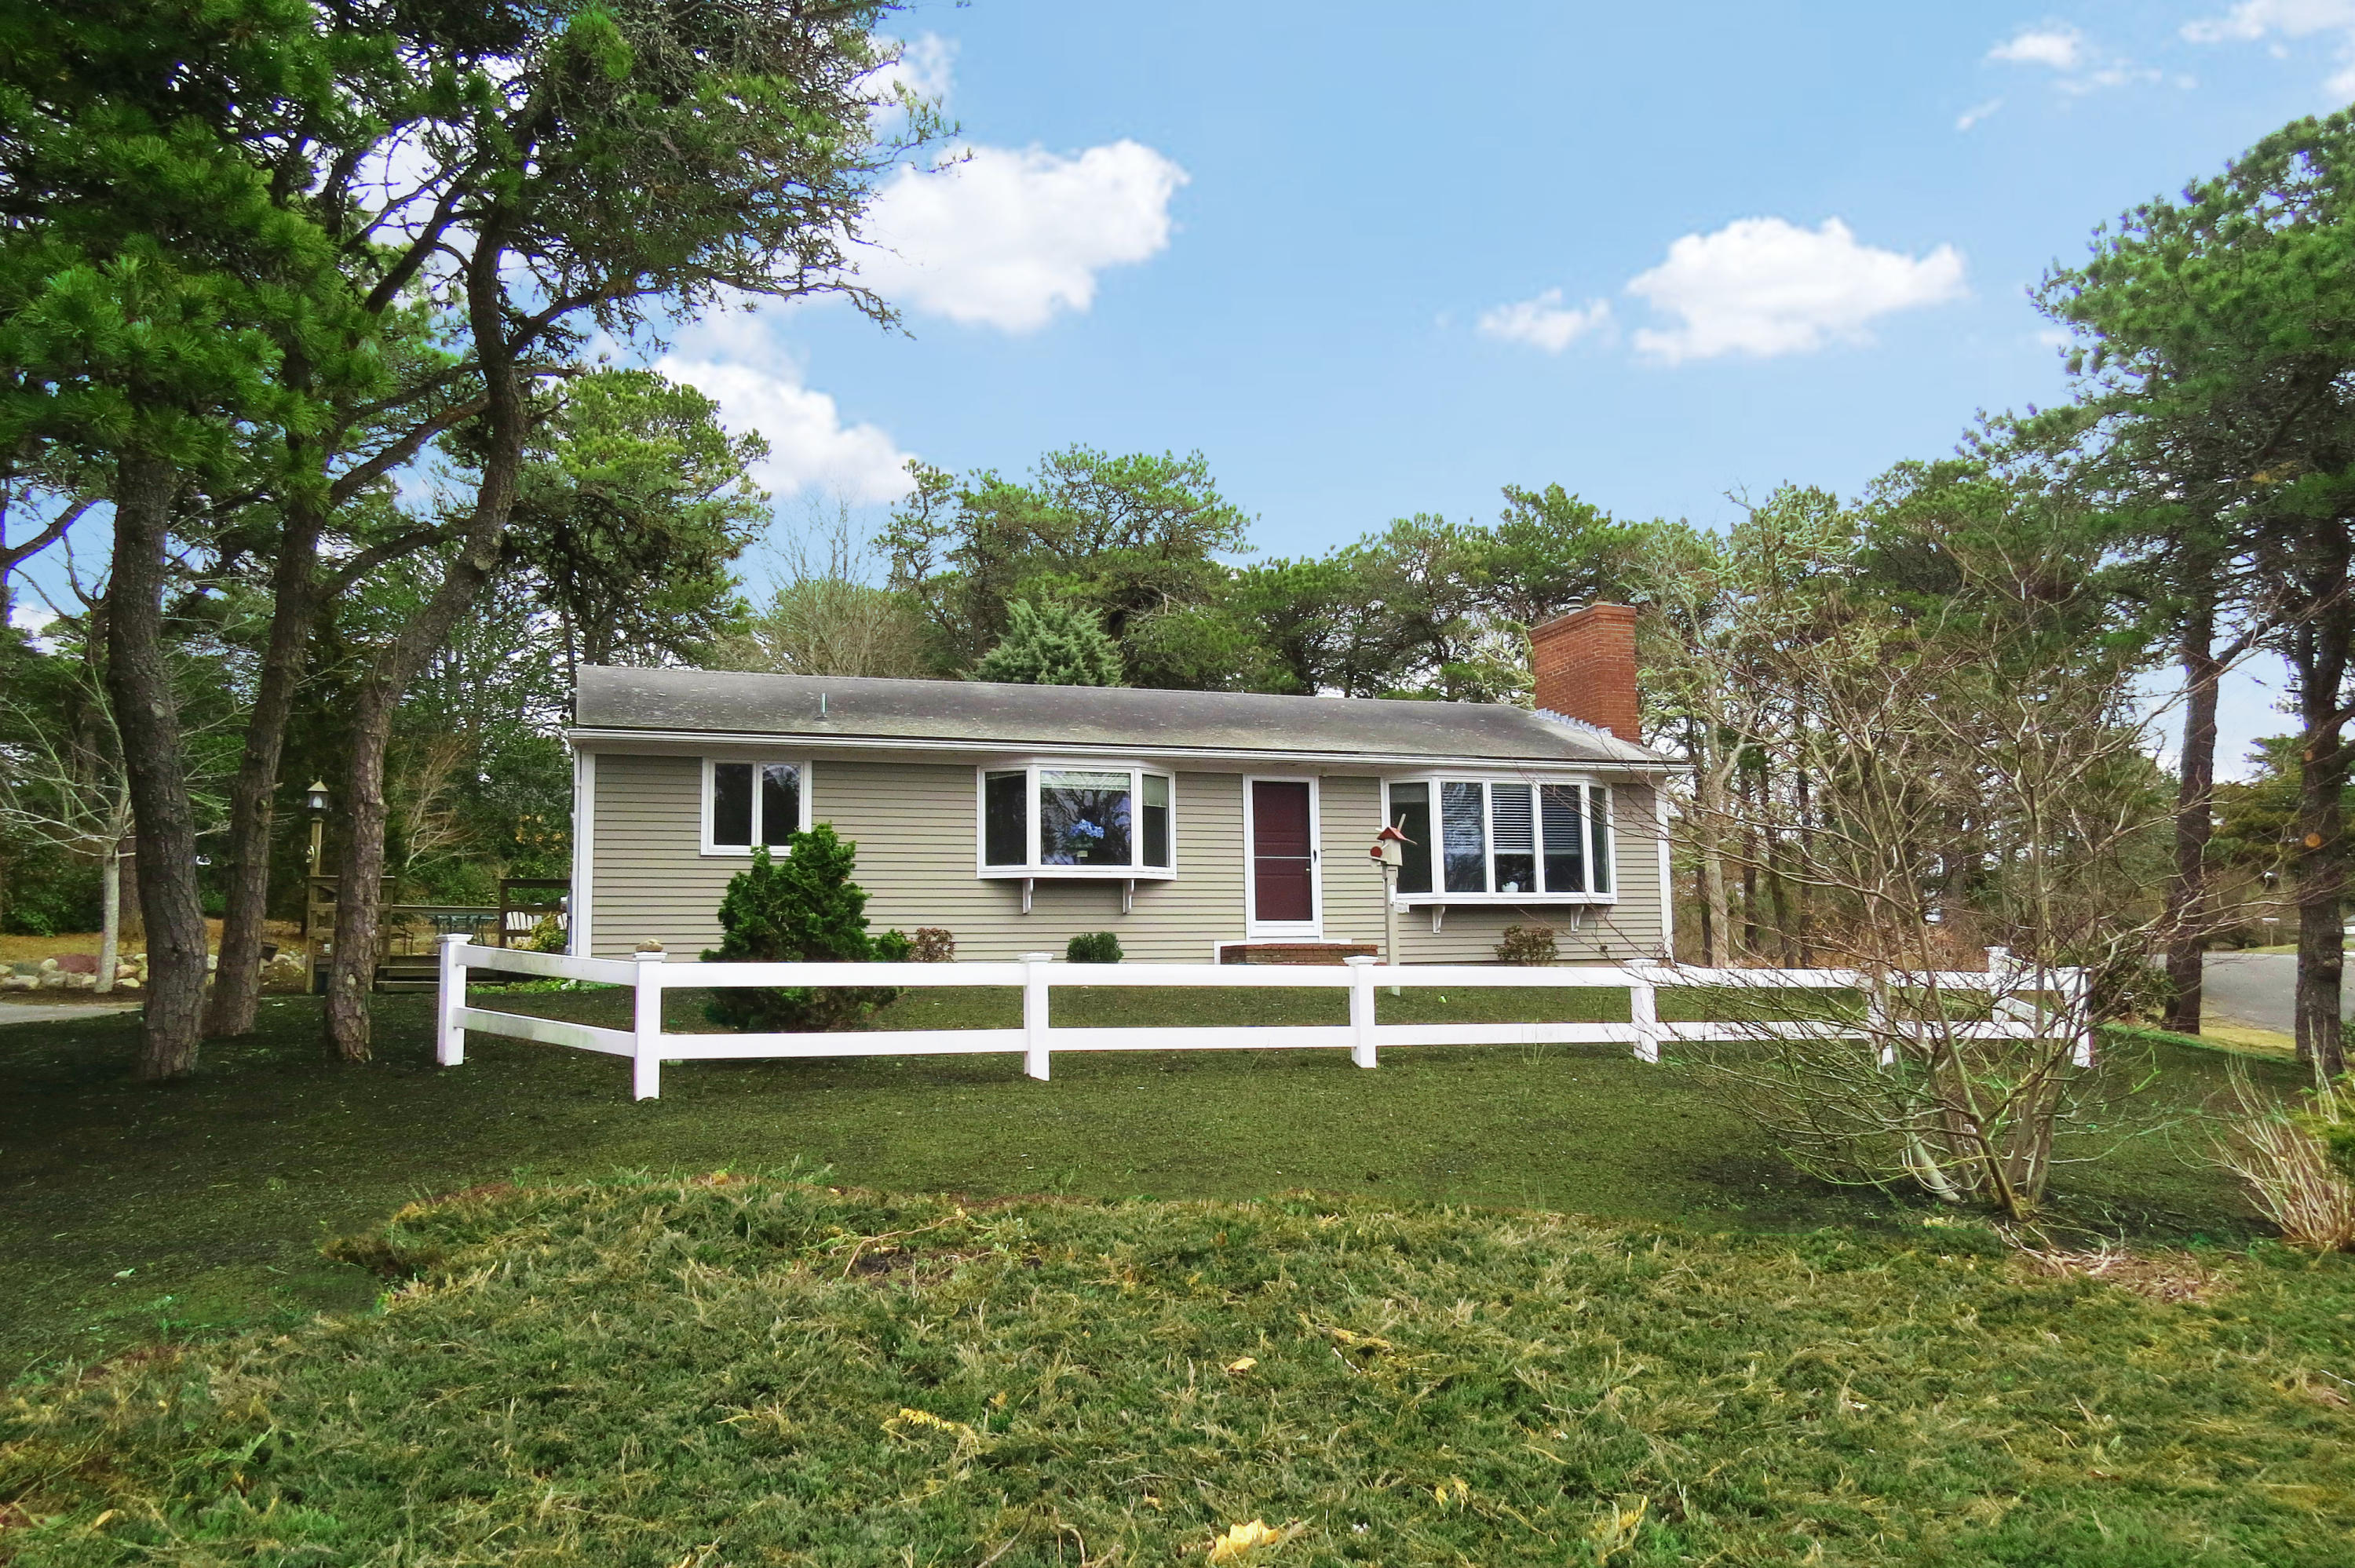 Chatham Real Estate - Cape Cod , 63 Ethelma Drive, Chatham MA, 02633   Listed at $469,000